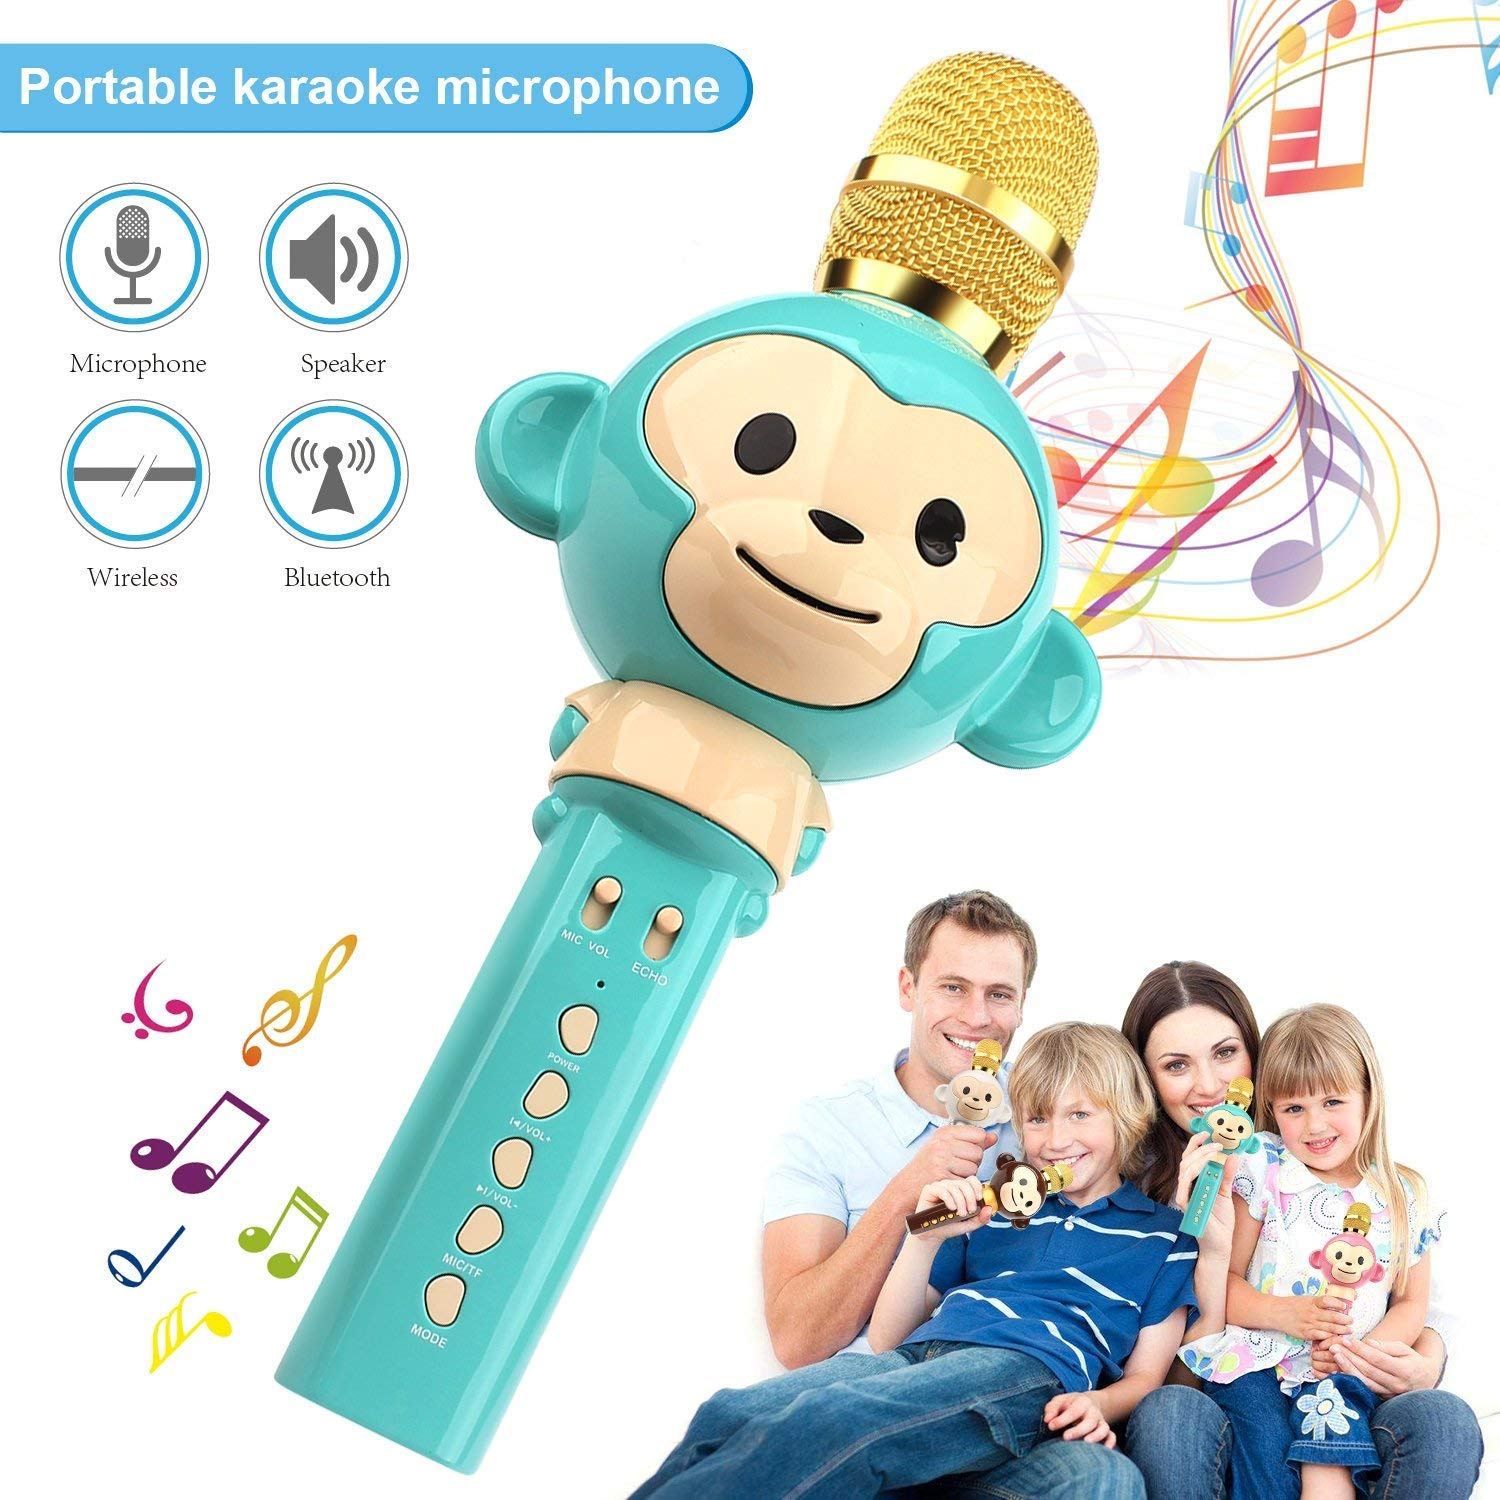 LingHui Kids Microphone Wireless Bluetooth Karaoke Microphone , 3-in-1 Portable Handheld Karaoke Mic Home Party Birthday Speaker Machine for iPhone/Android/iPad/Sony,PC and All Smartphone (Green)